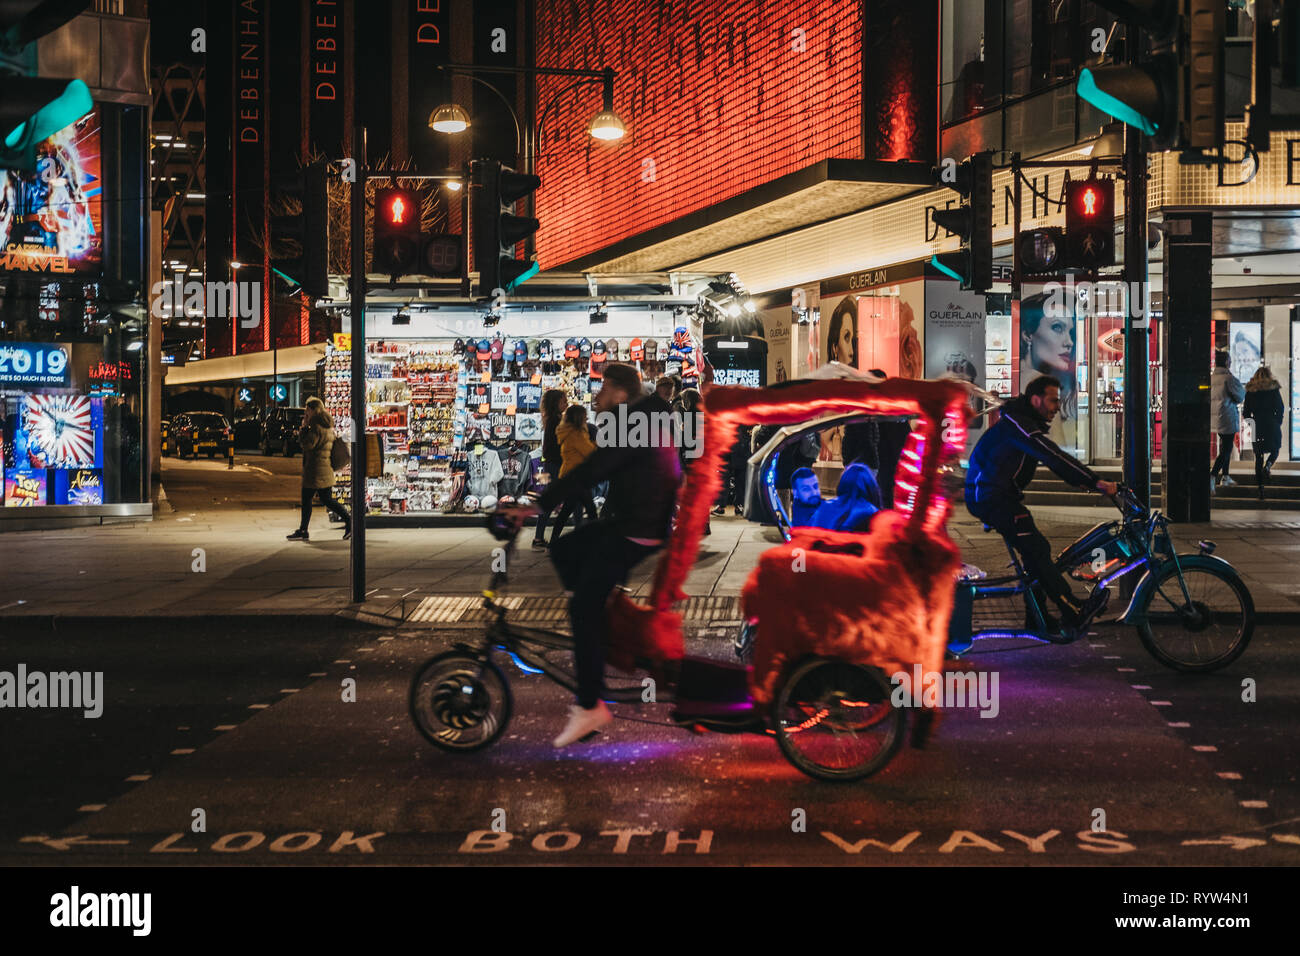 London, UK - March 9, 2019: Colourful rickshaws riding on Oxford Street, London, at night. Oxford Street if one of the most famous streets in London,  - Stock Image